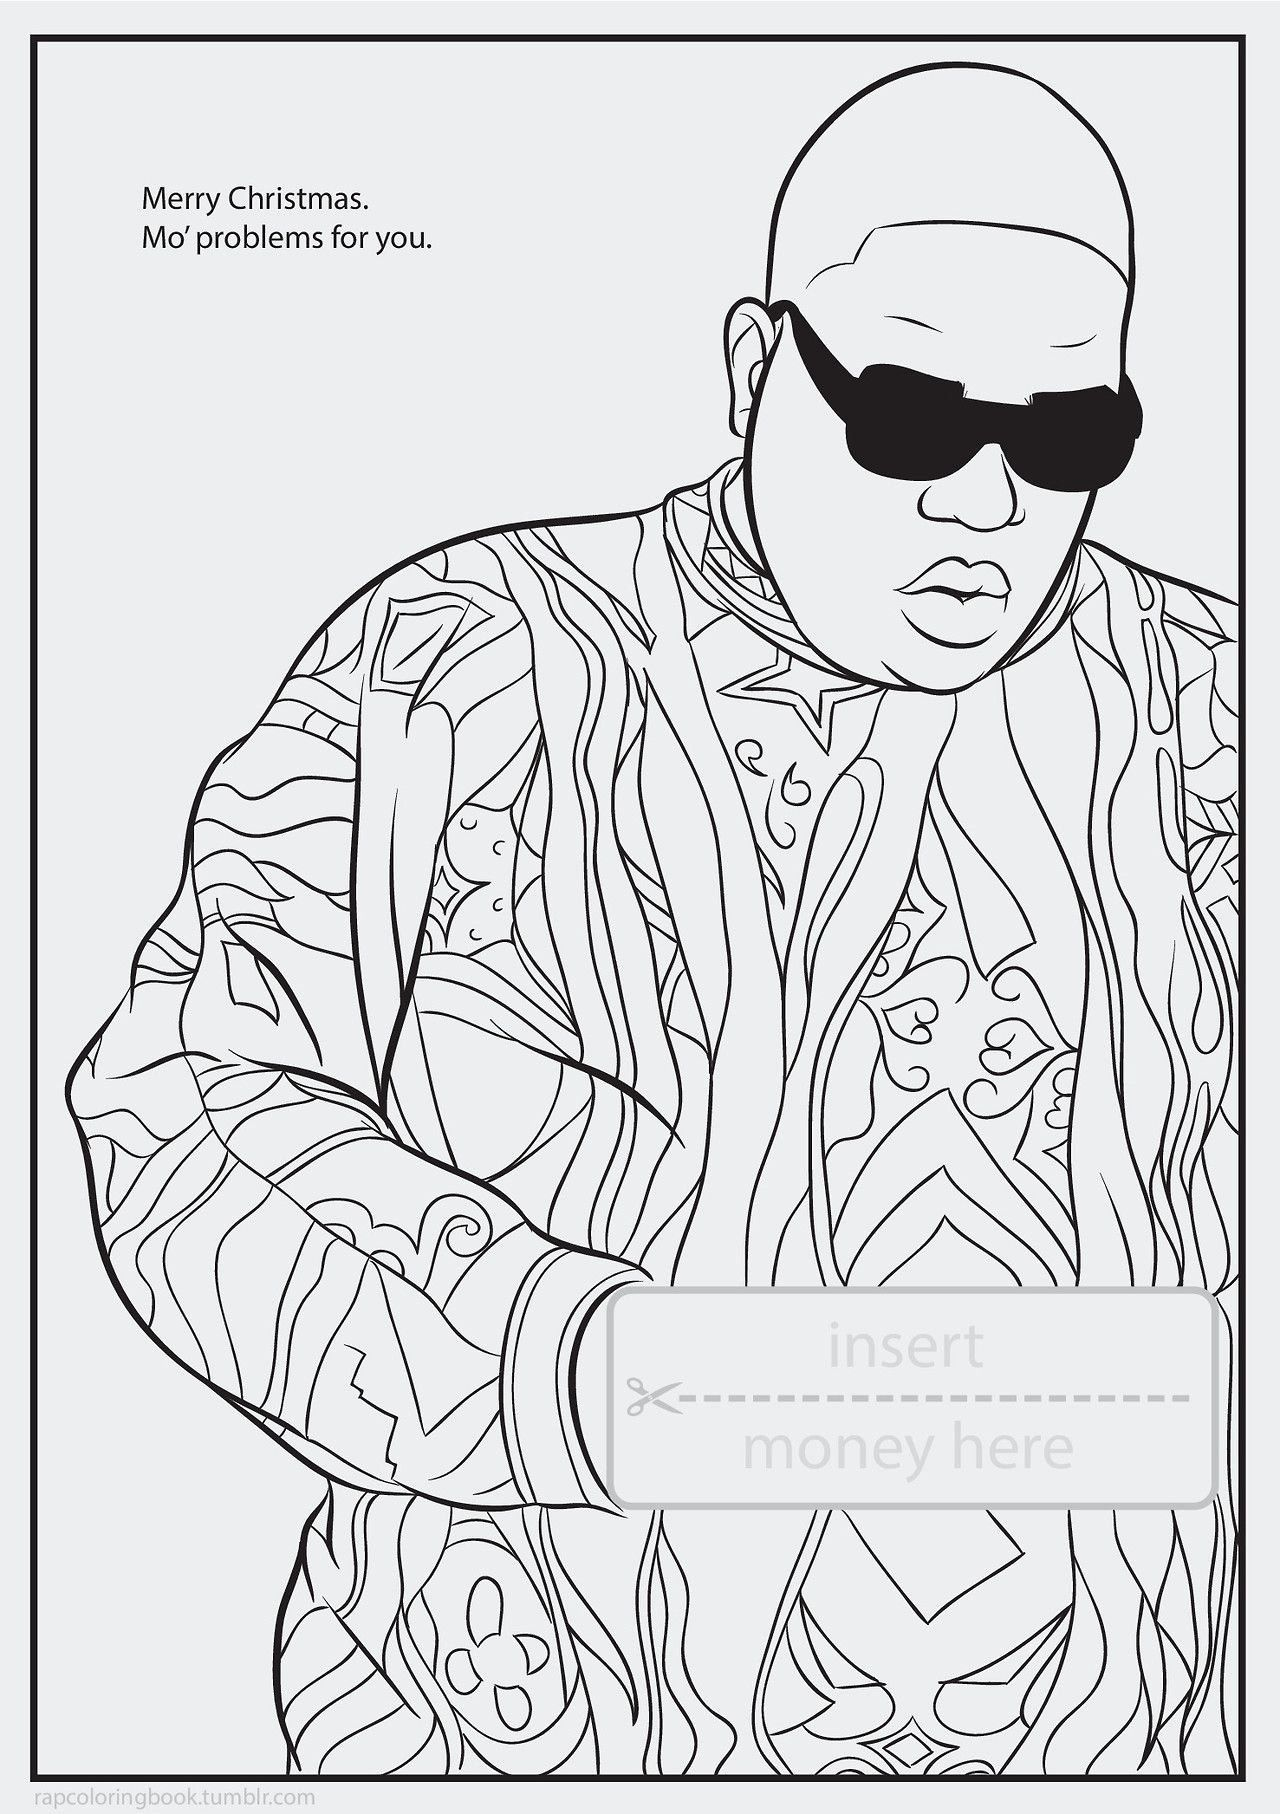 Gangsta Rap Coloring Book Beautiful Coloring Book Gangsta Rap Coloring Pages Free Book Pdf Criatividade